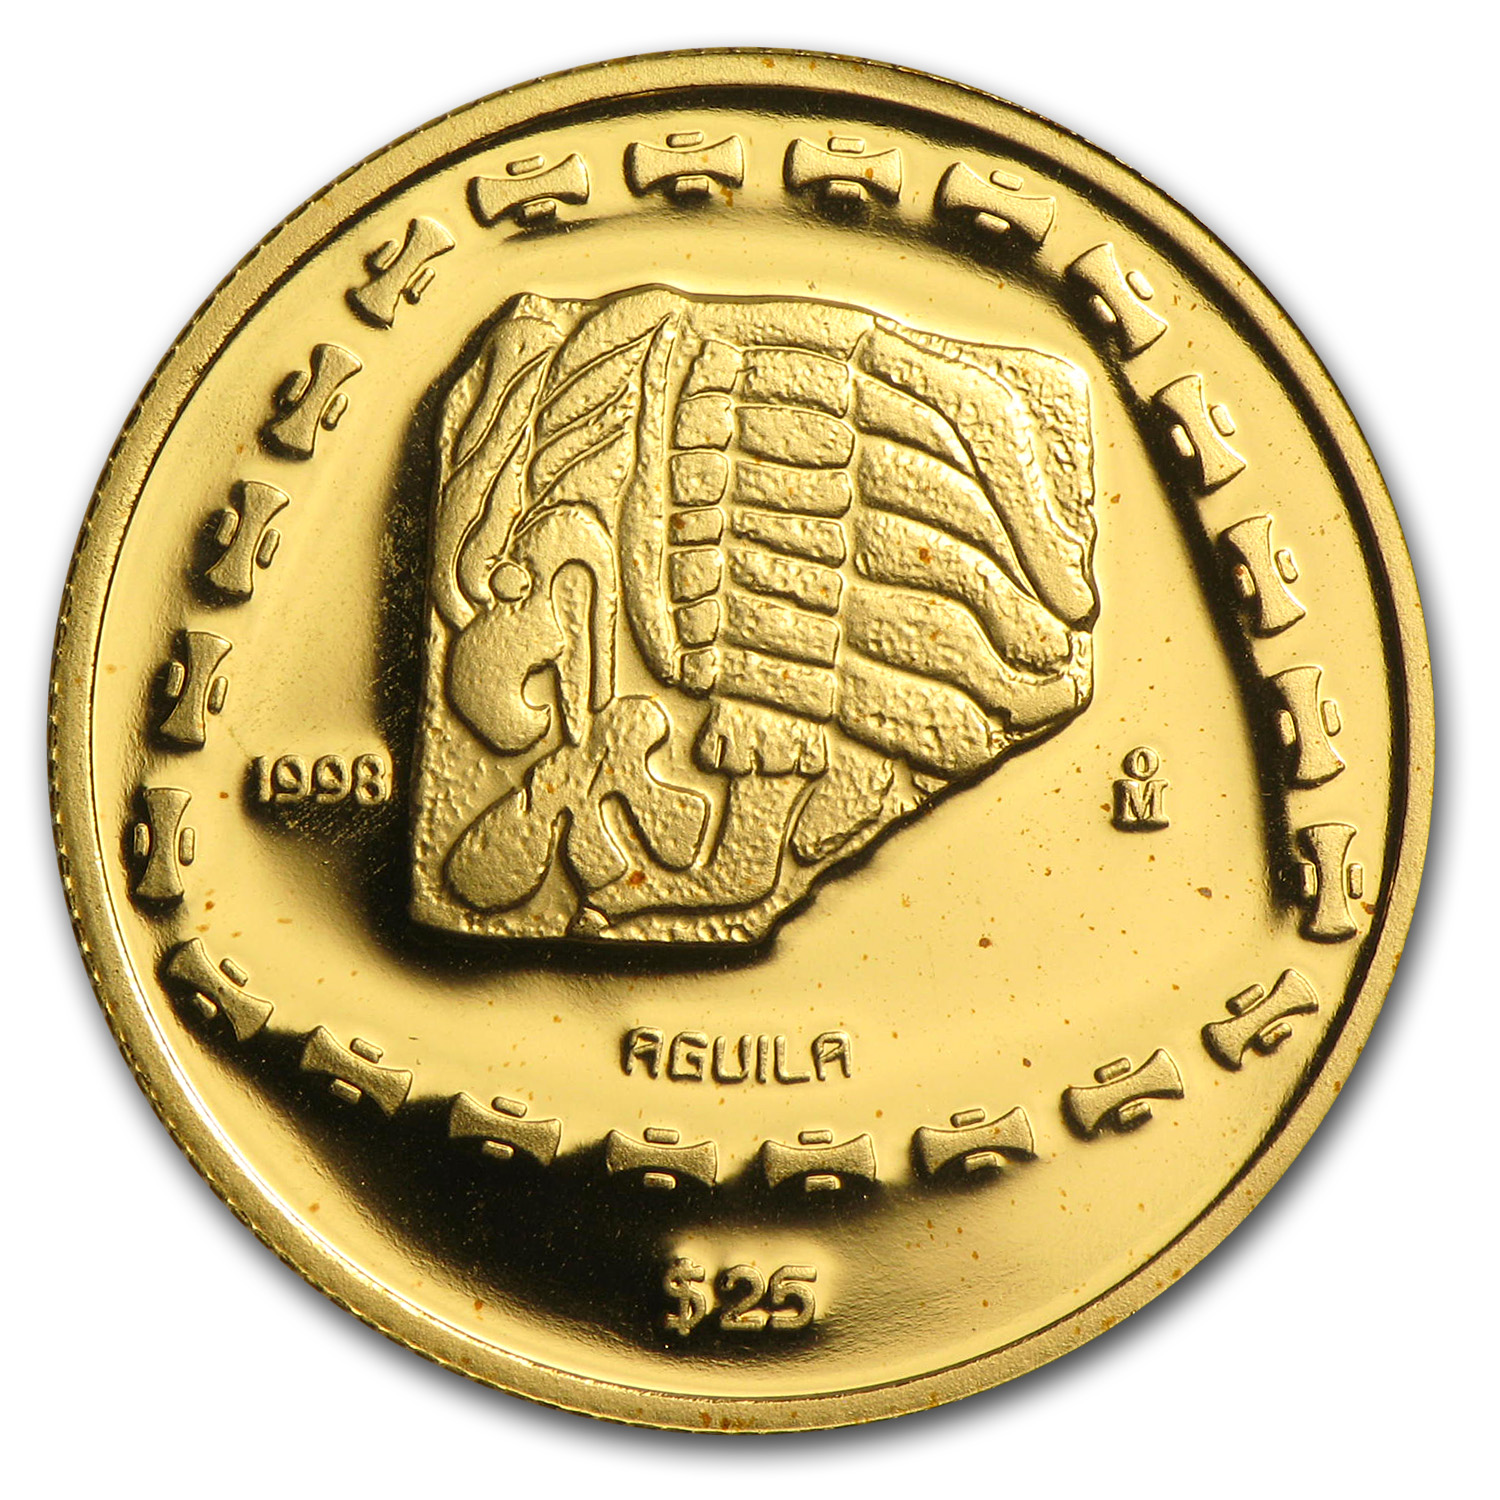 1998 Mexico Gold 25 Pesos Aguila Proof